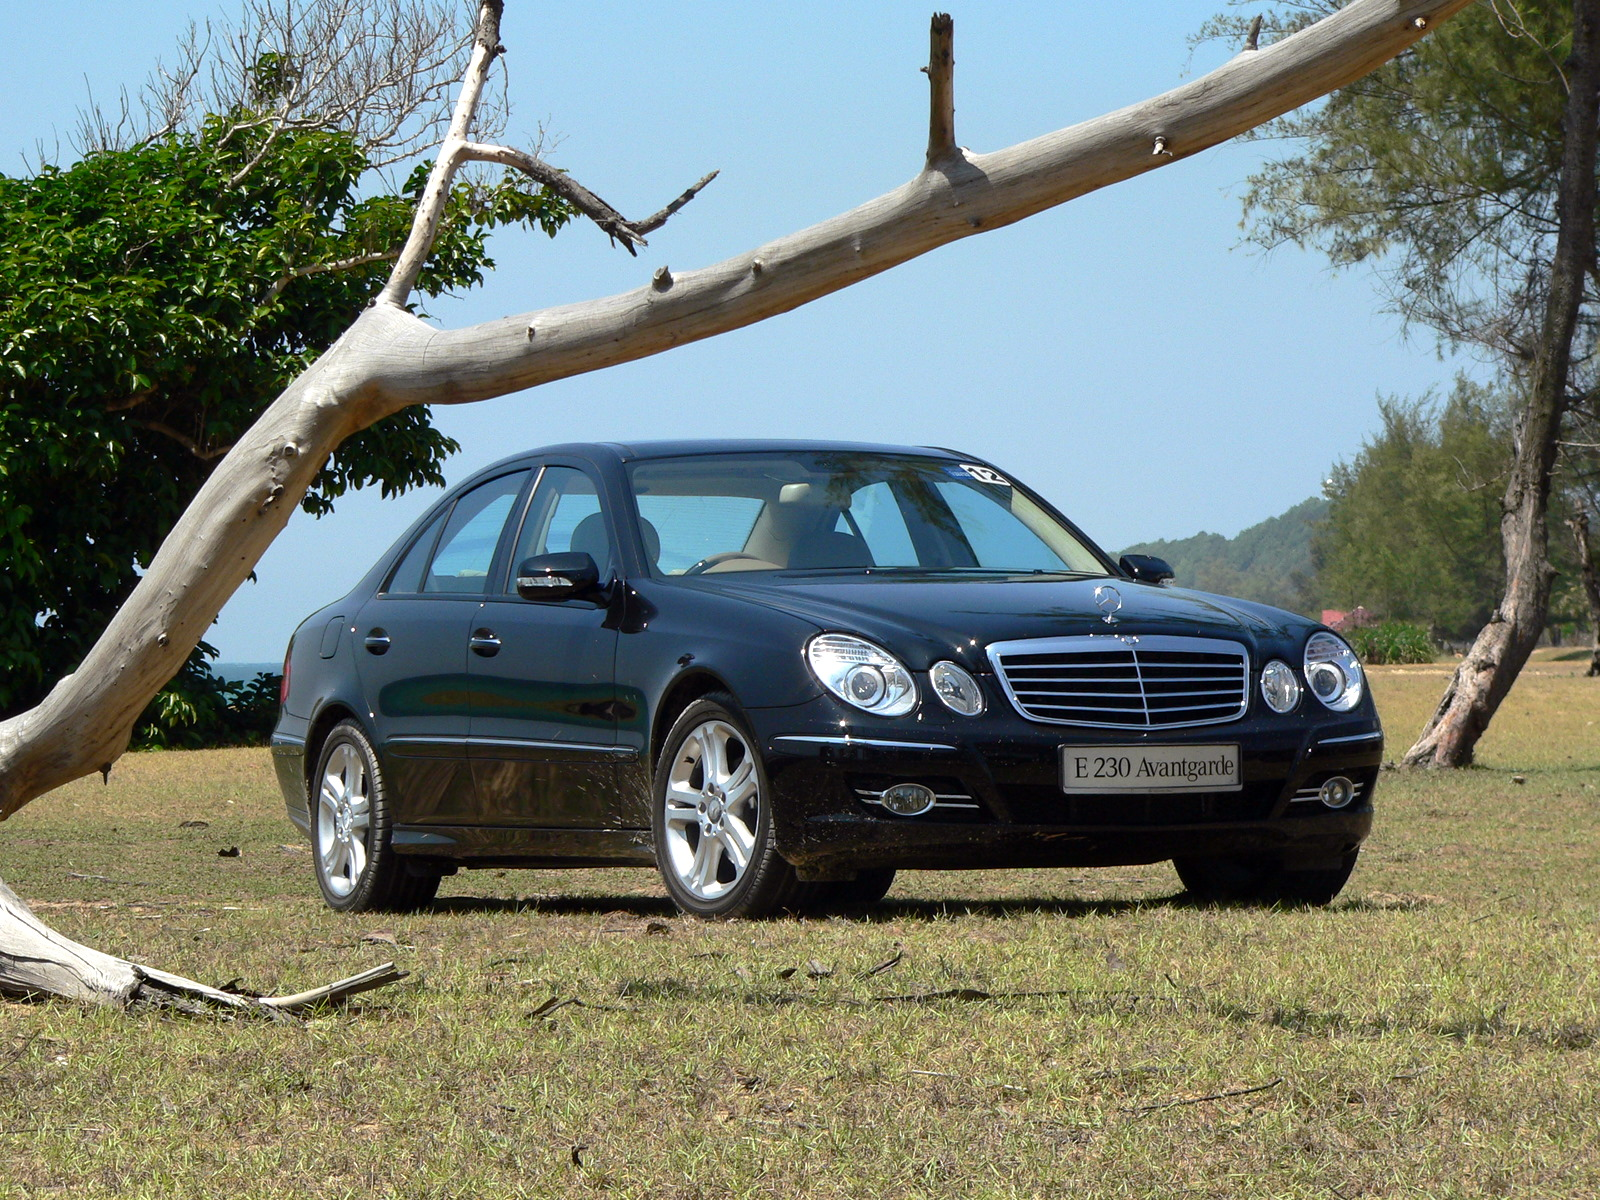 W211 Mercedes-Benz E230 Avantgarde Review